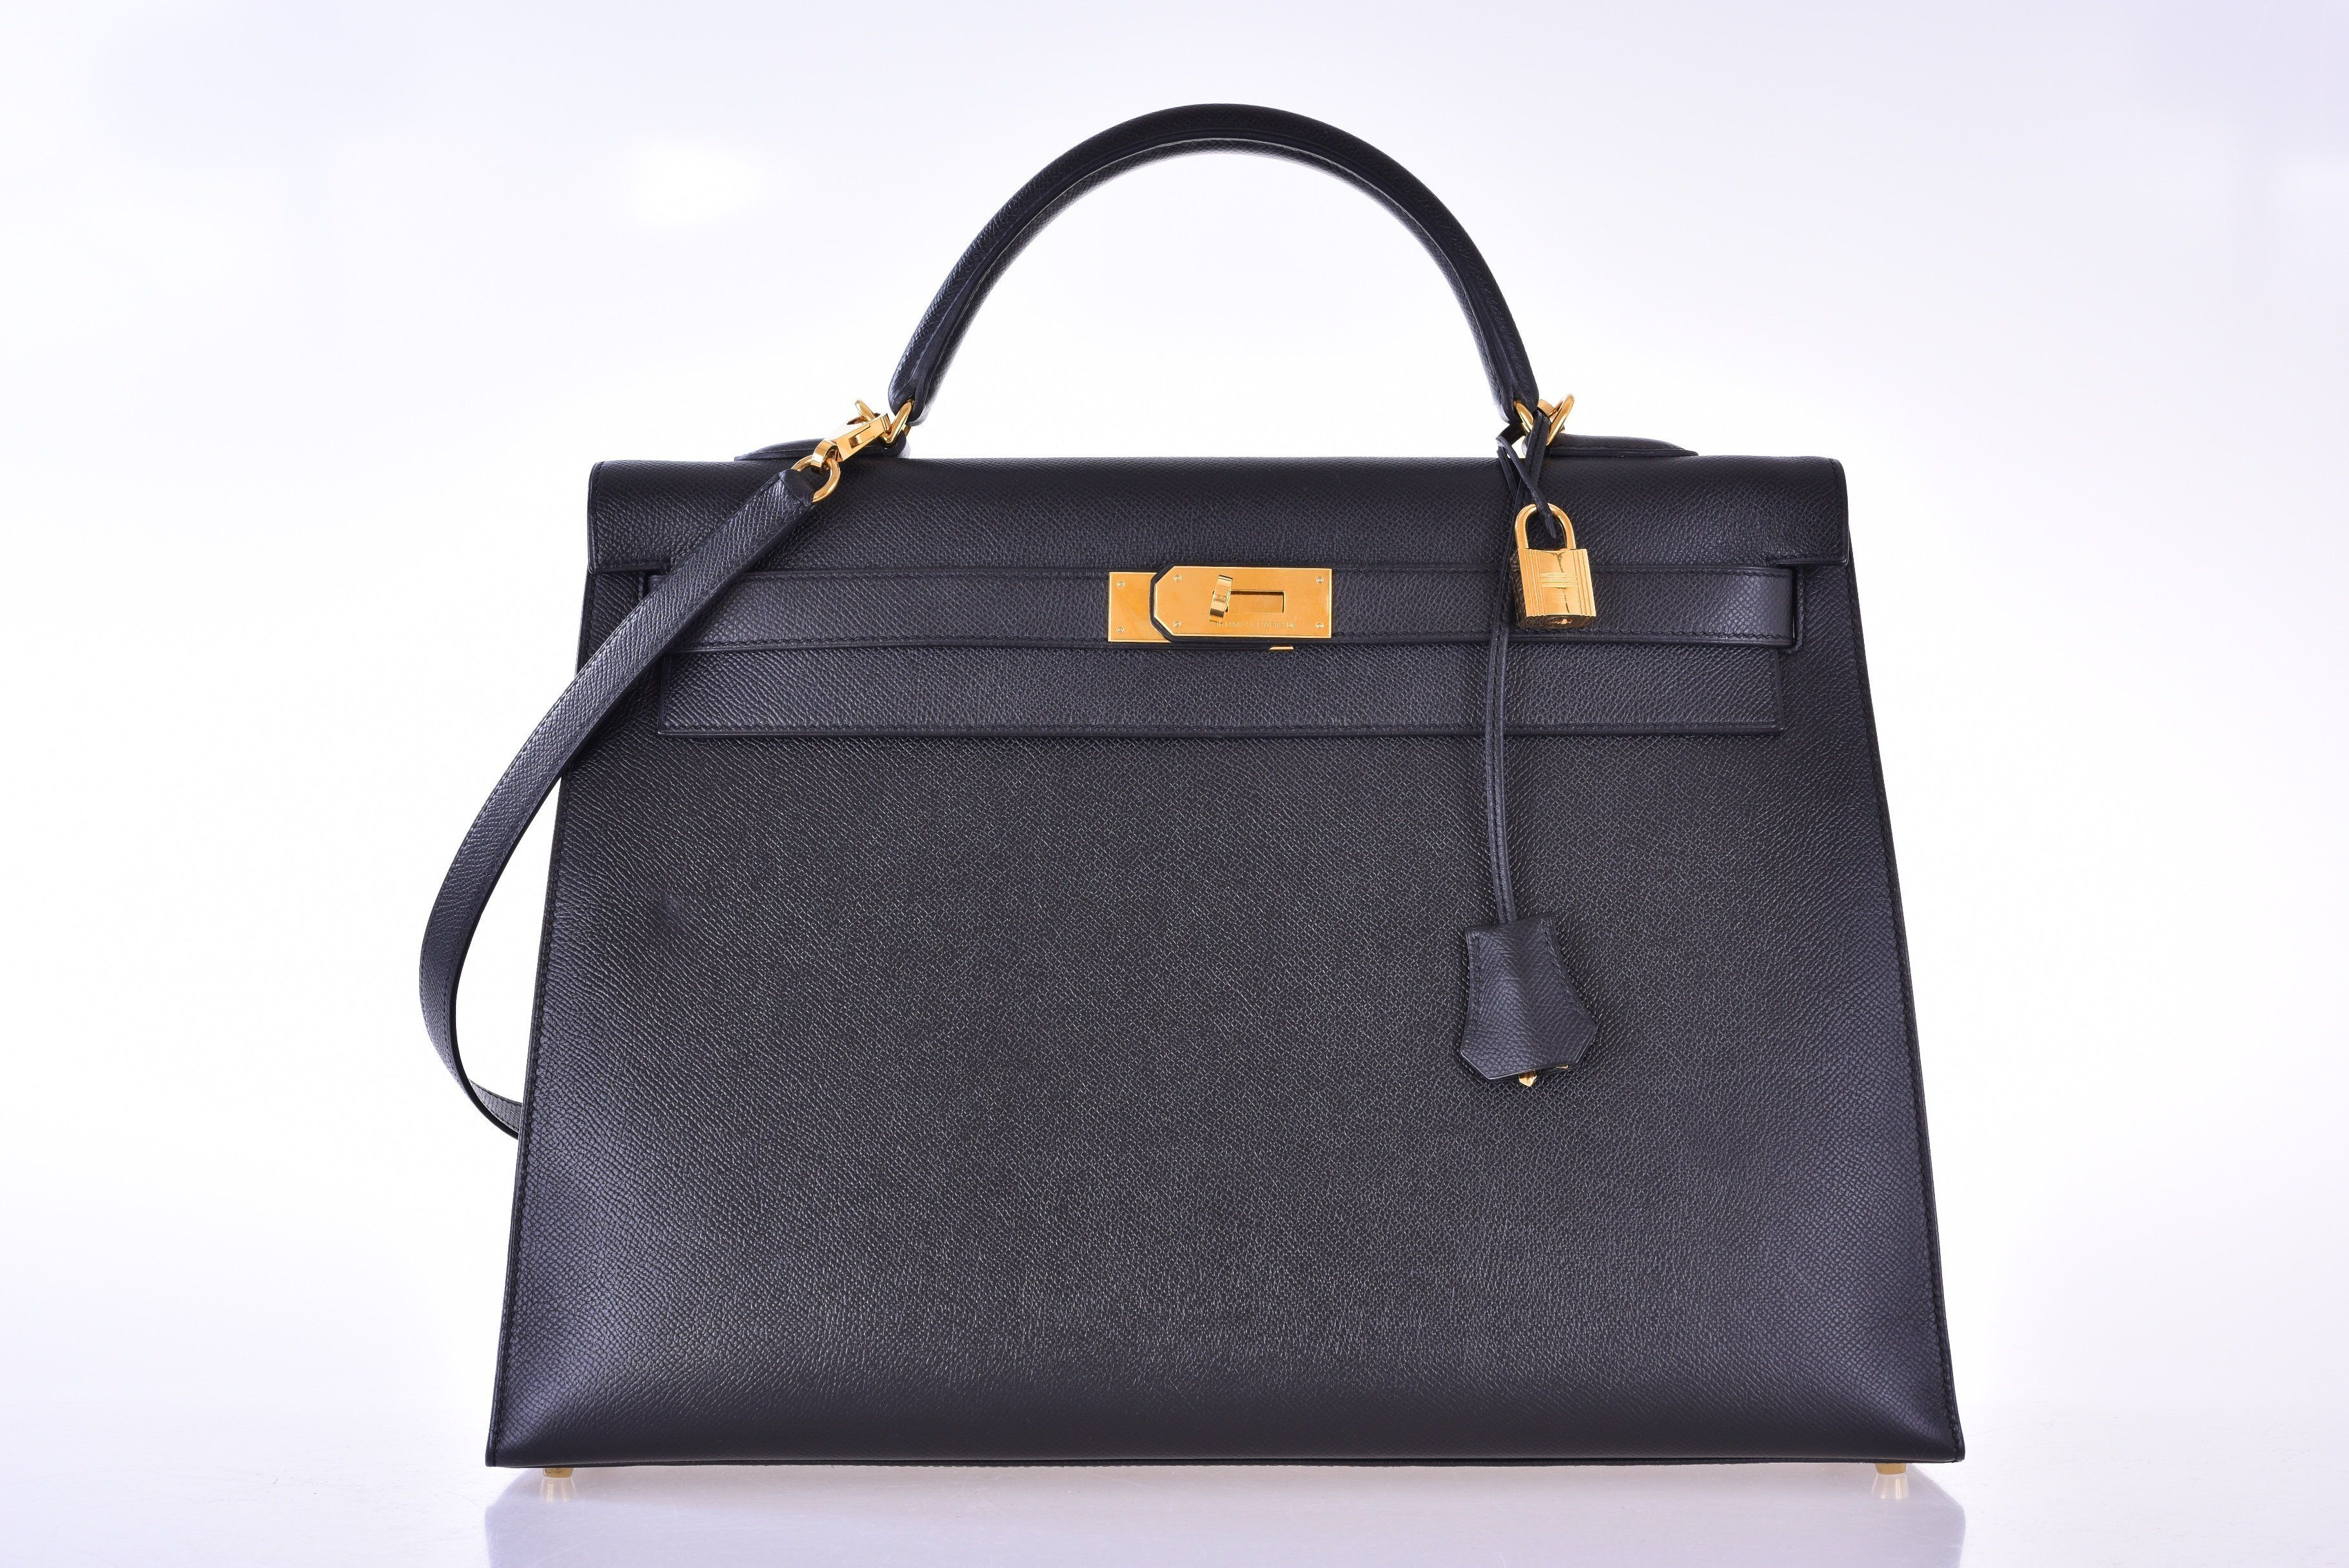 6983bbe2a304 Hermes Kelly 40CM Black Epsom Gold Hardware -  18900 - Excellent Condition  This 40cm Sellier Kelly bag by Herms in Black Epsom Leather and features a  top ...